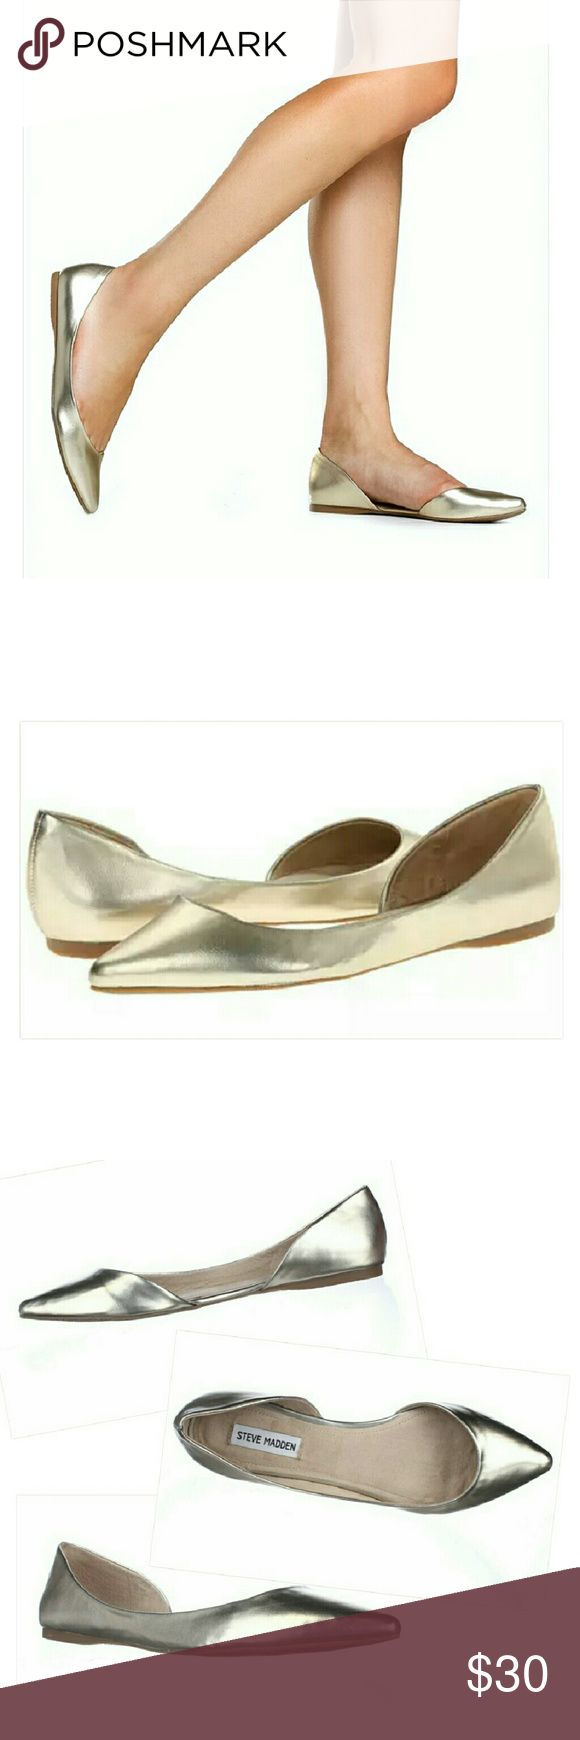 Steve Madden Elusion Dusty Gold D'orsay Flat Shoes Steve Madden Elusion Dusty Gold D'orsay Flat Shoes.  EUC,  WORN ONLY ONCE. Steve Madden Shoes Flats & Loafers